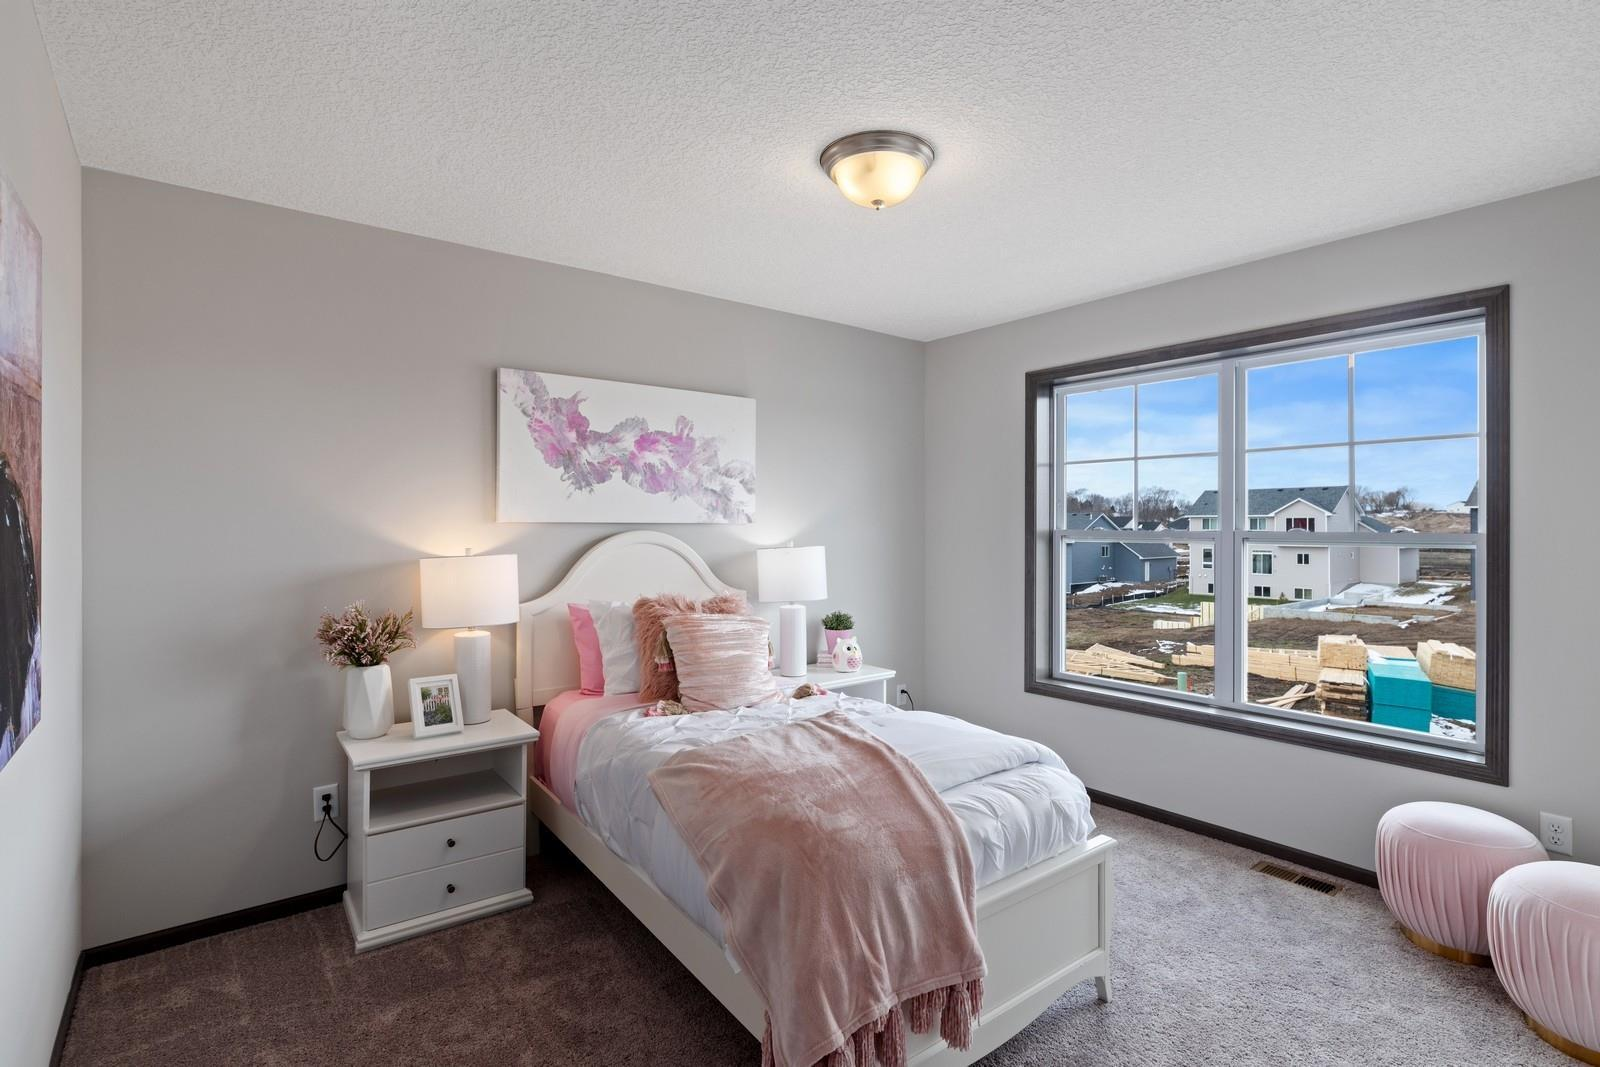 Bedroom featured in The Creighton By Brandl Anderson in Minneapolis-St. Paul, MN